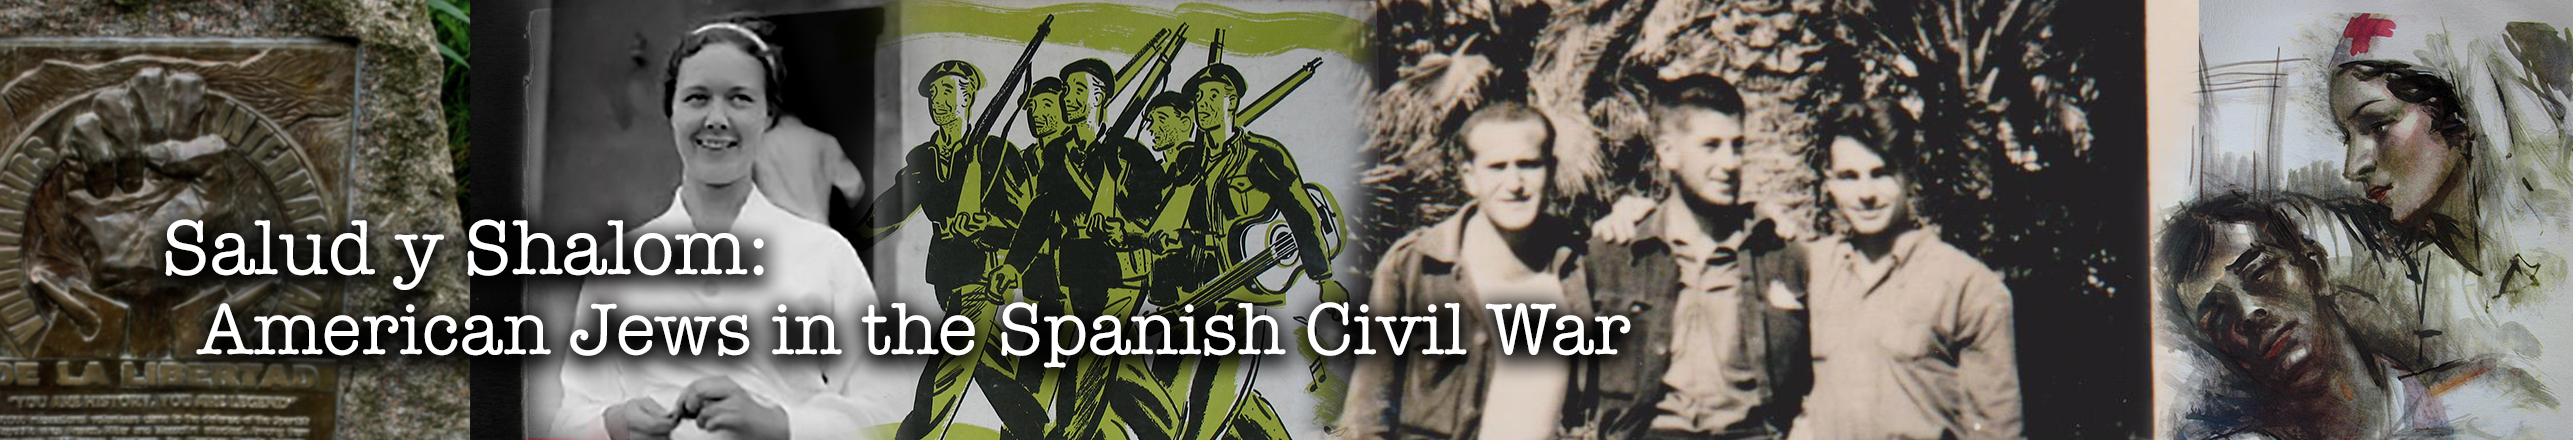 Salud y Shalom: Americans Jews in the Spanish Civil War IV